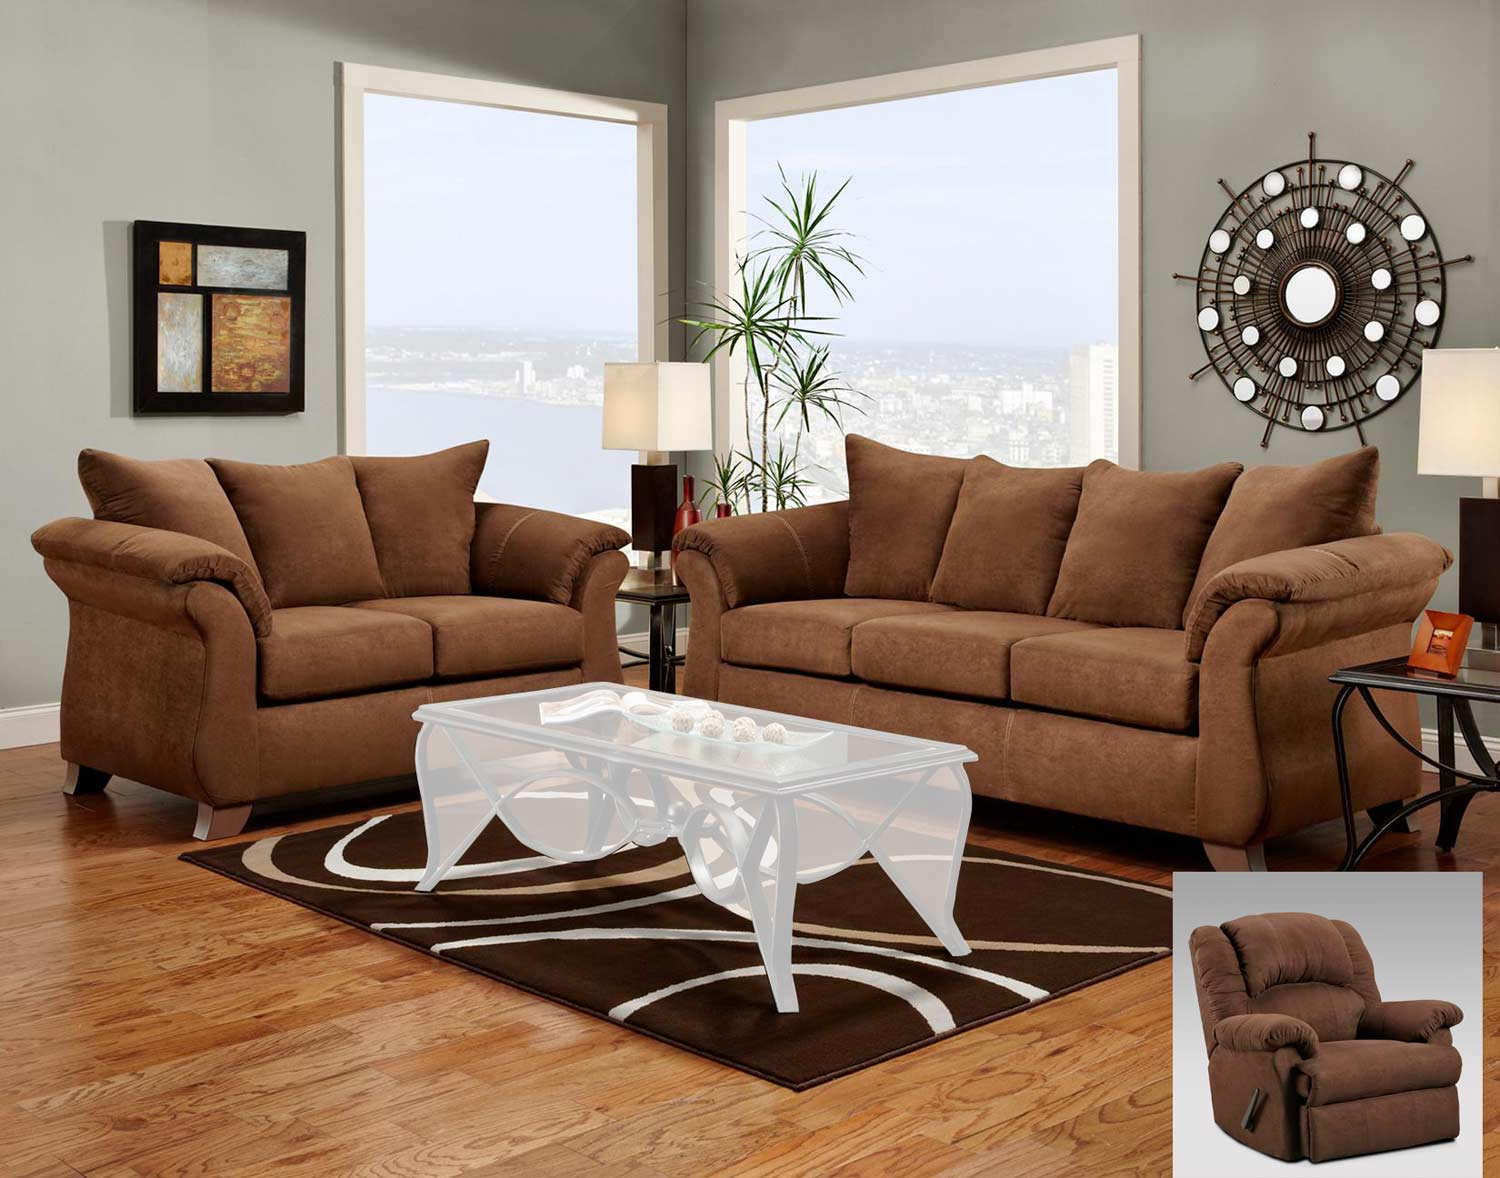 Chelsea Home Payton Sofa Set - Aruba Chocolate